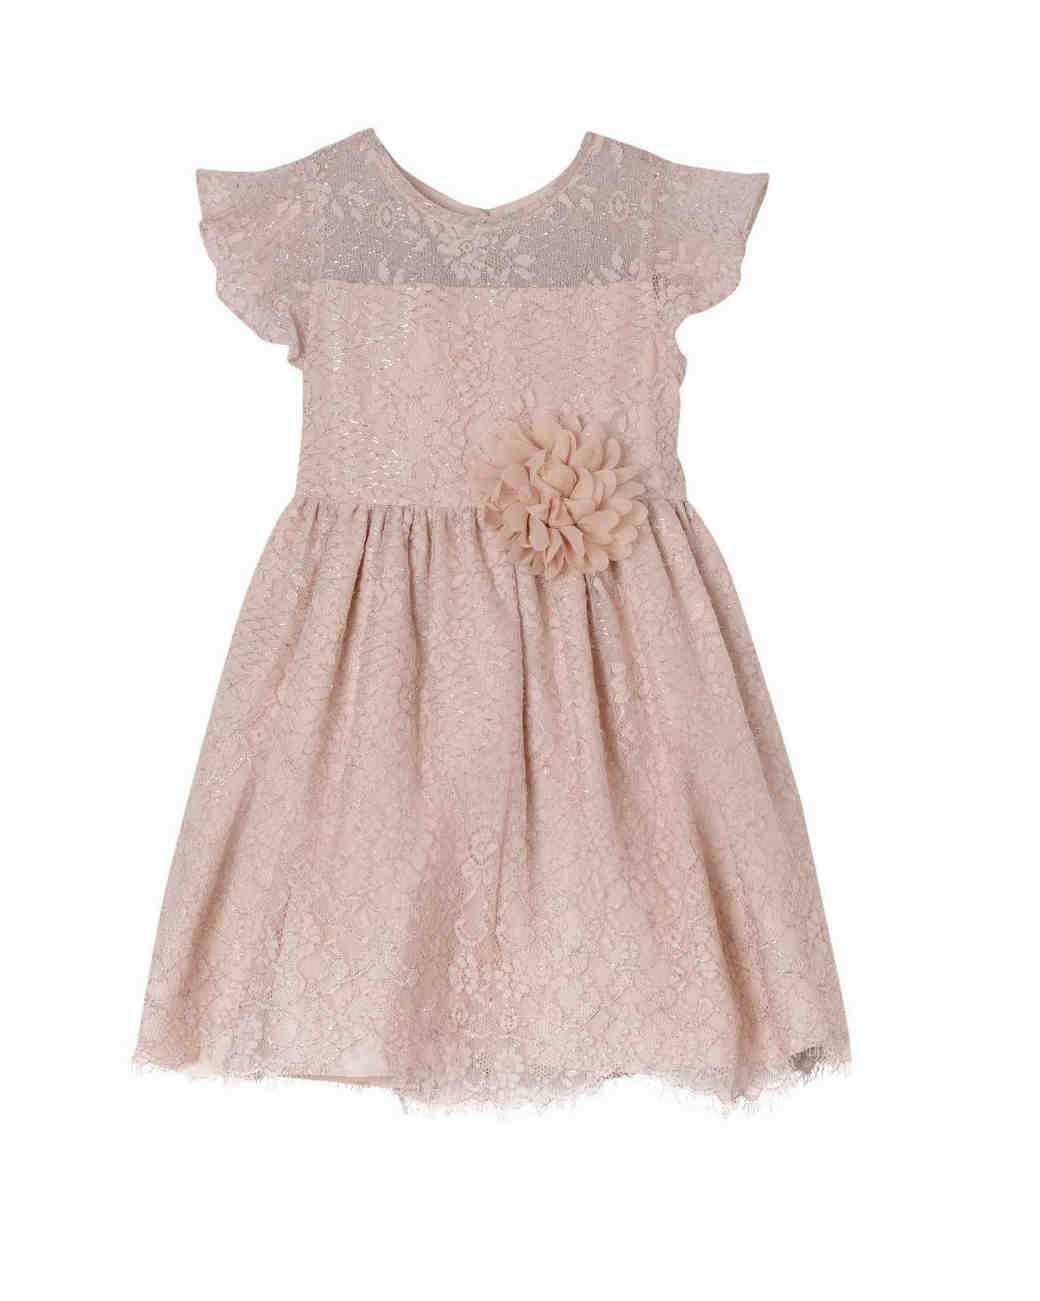 d12803ffb13 The Sweetest Lace Flower Girl Dresses